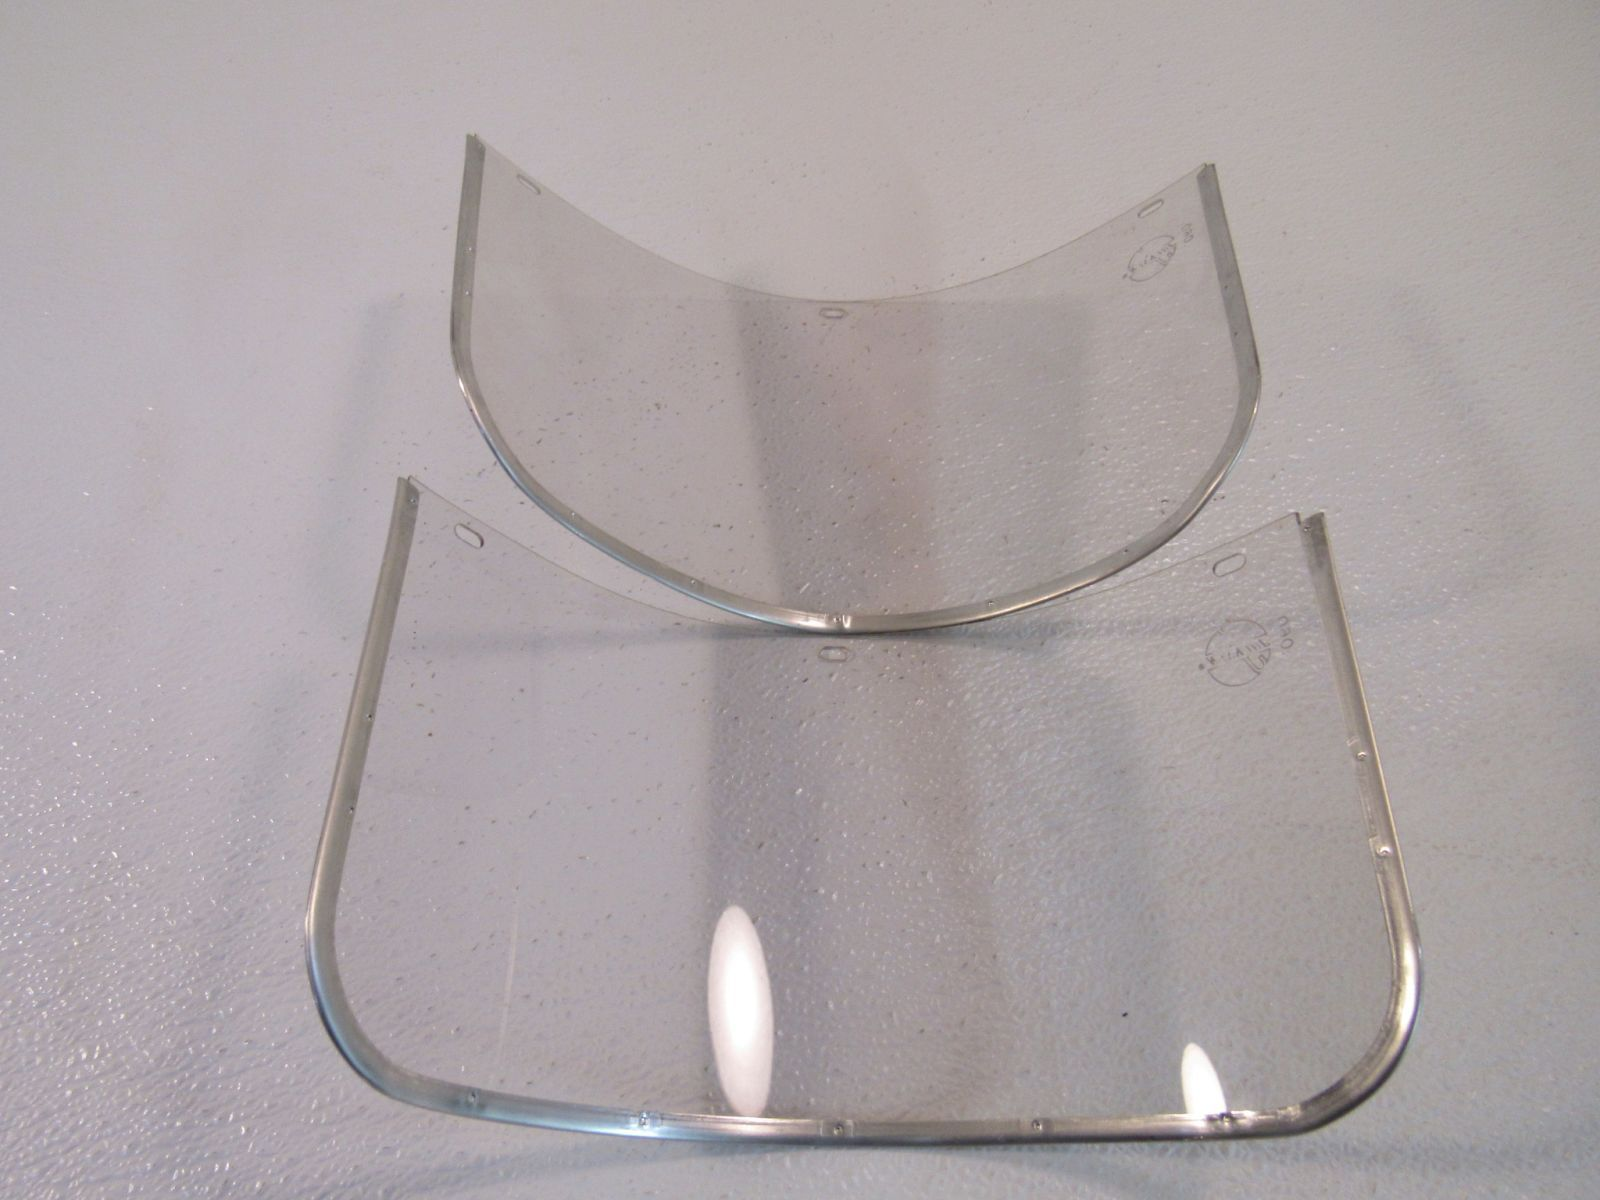 Jackson Lot of 2 Faceshields For Z-87 Clear 060 Plastic